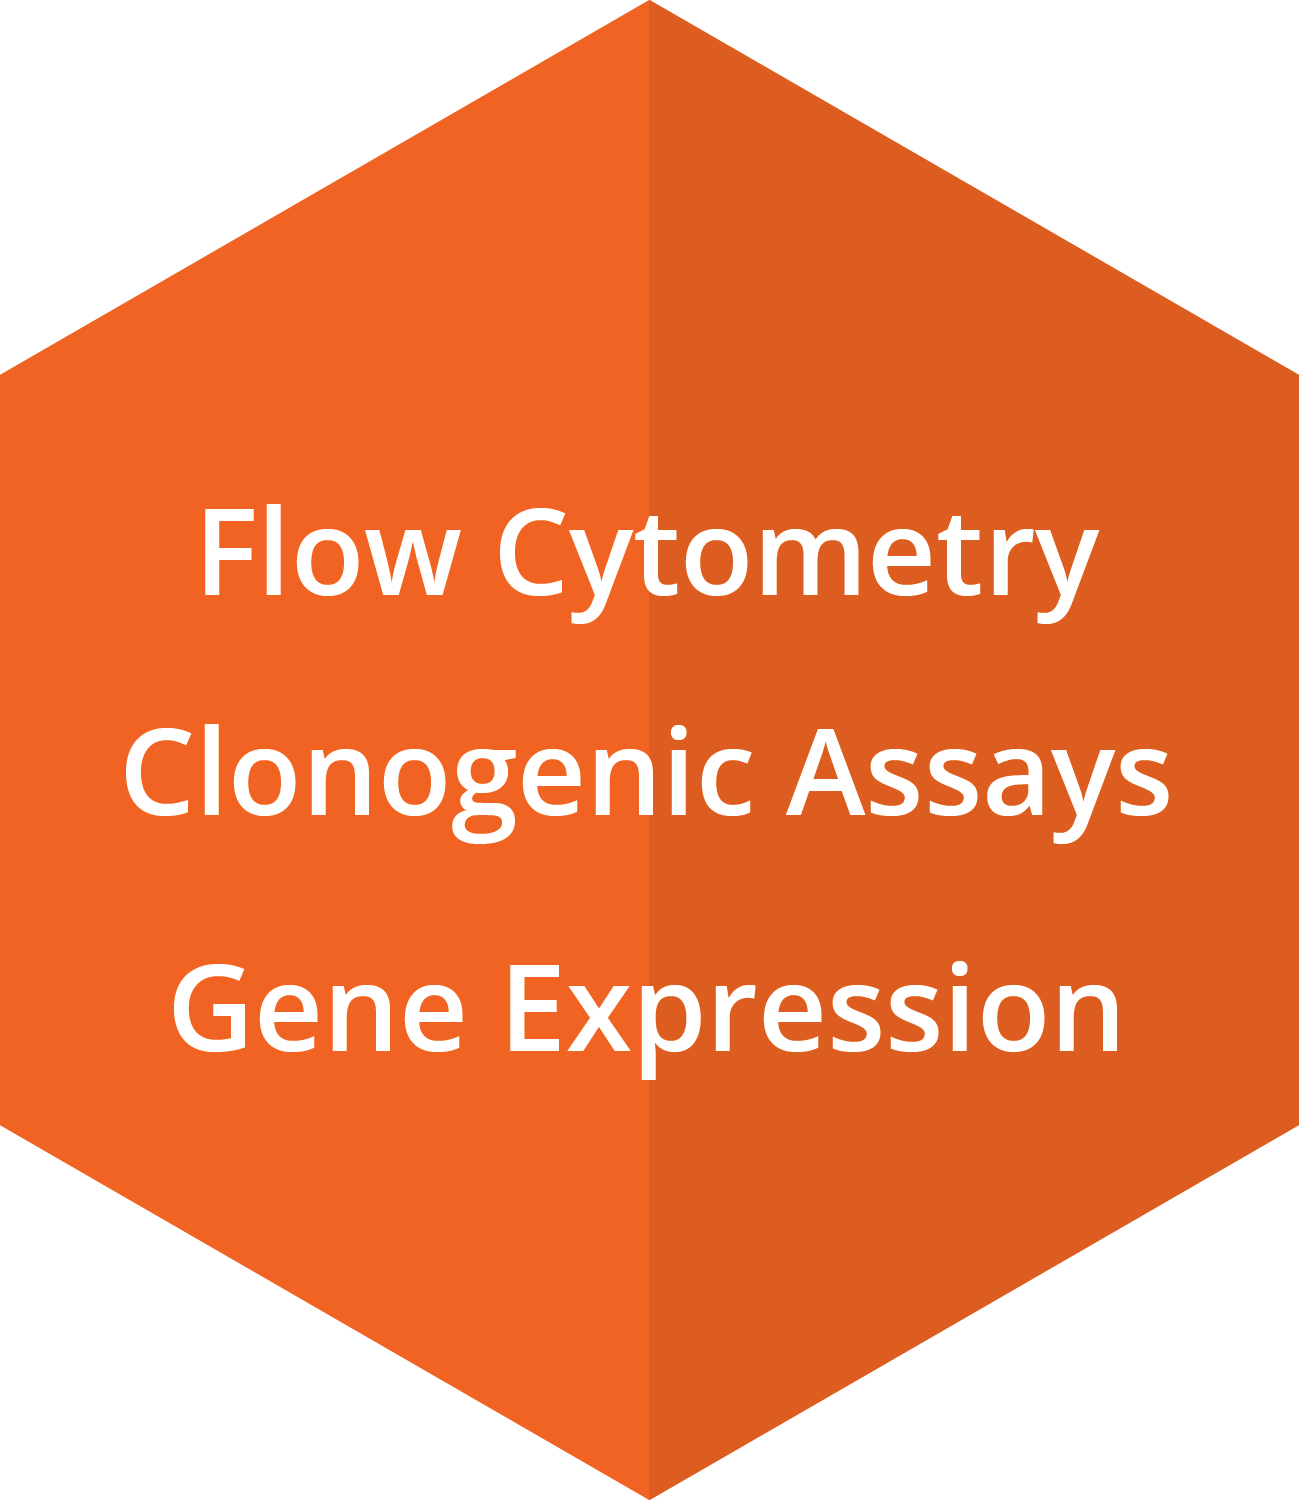 Flow Cytometry, Clonogenic Assays, Gene Expression